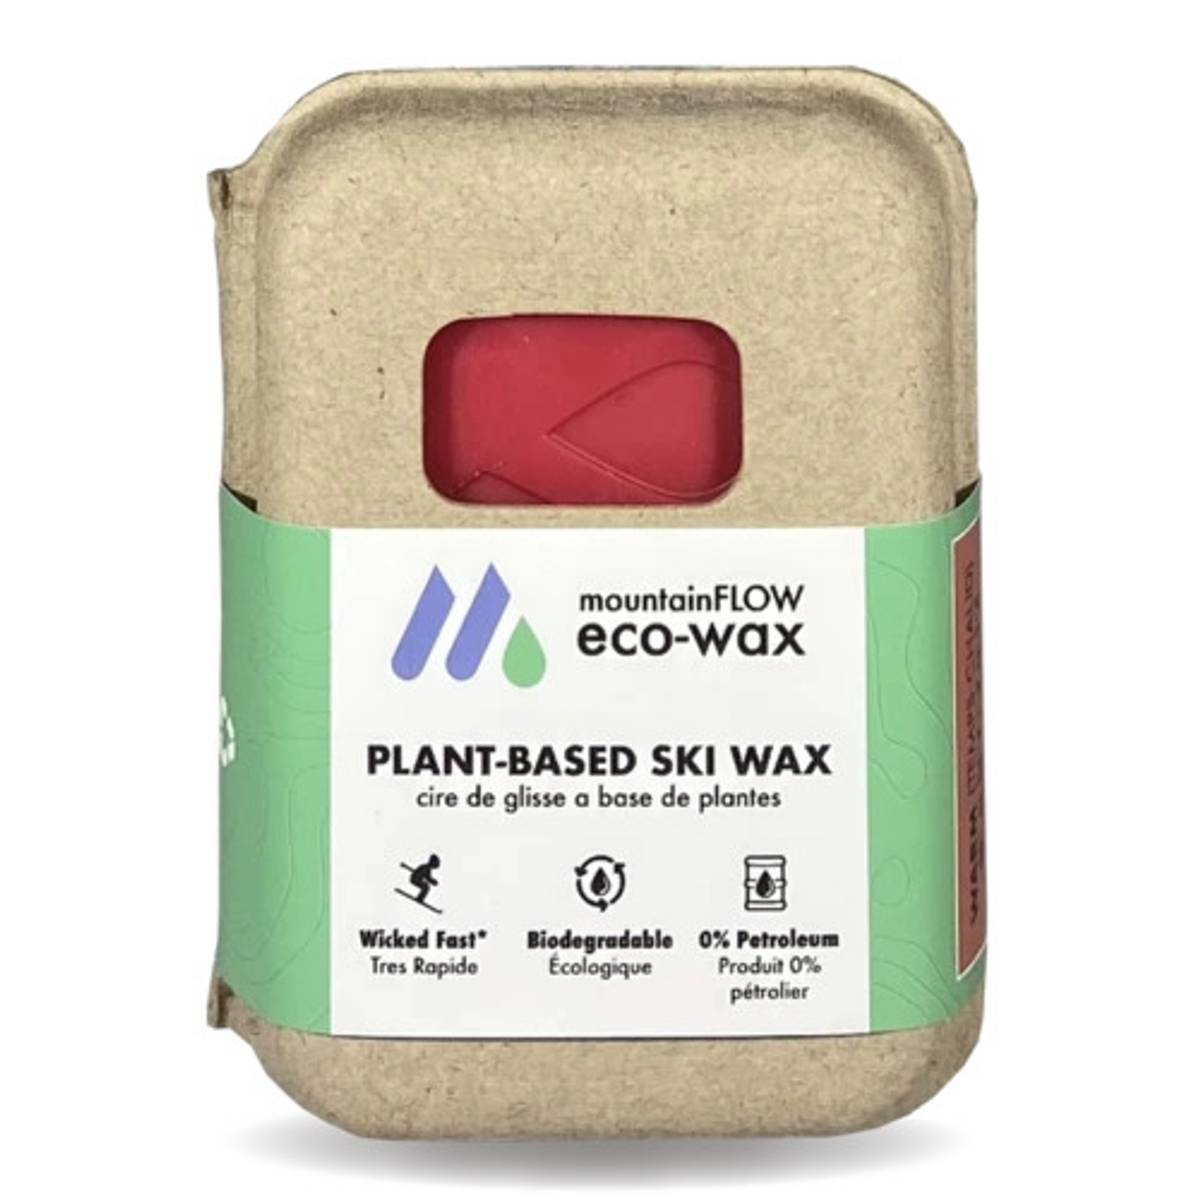 mountainFLOW Hot ECO-Wax Warm | -7 to 2C